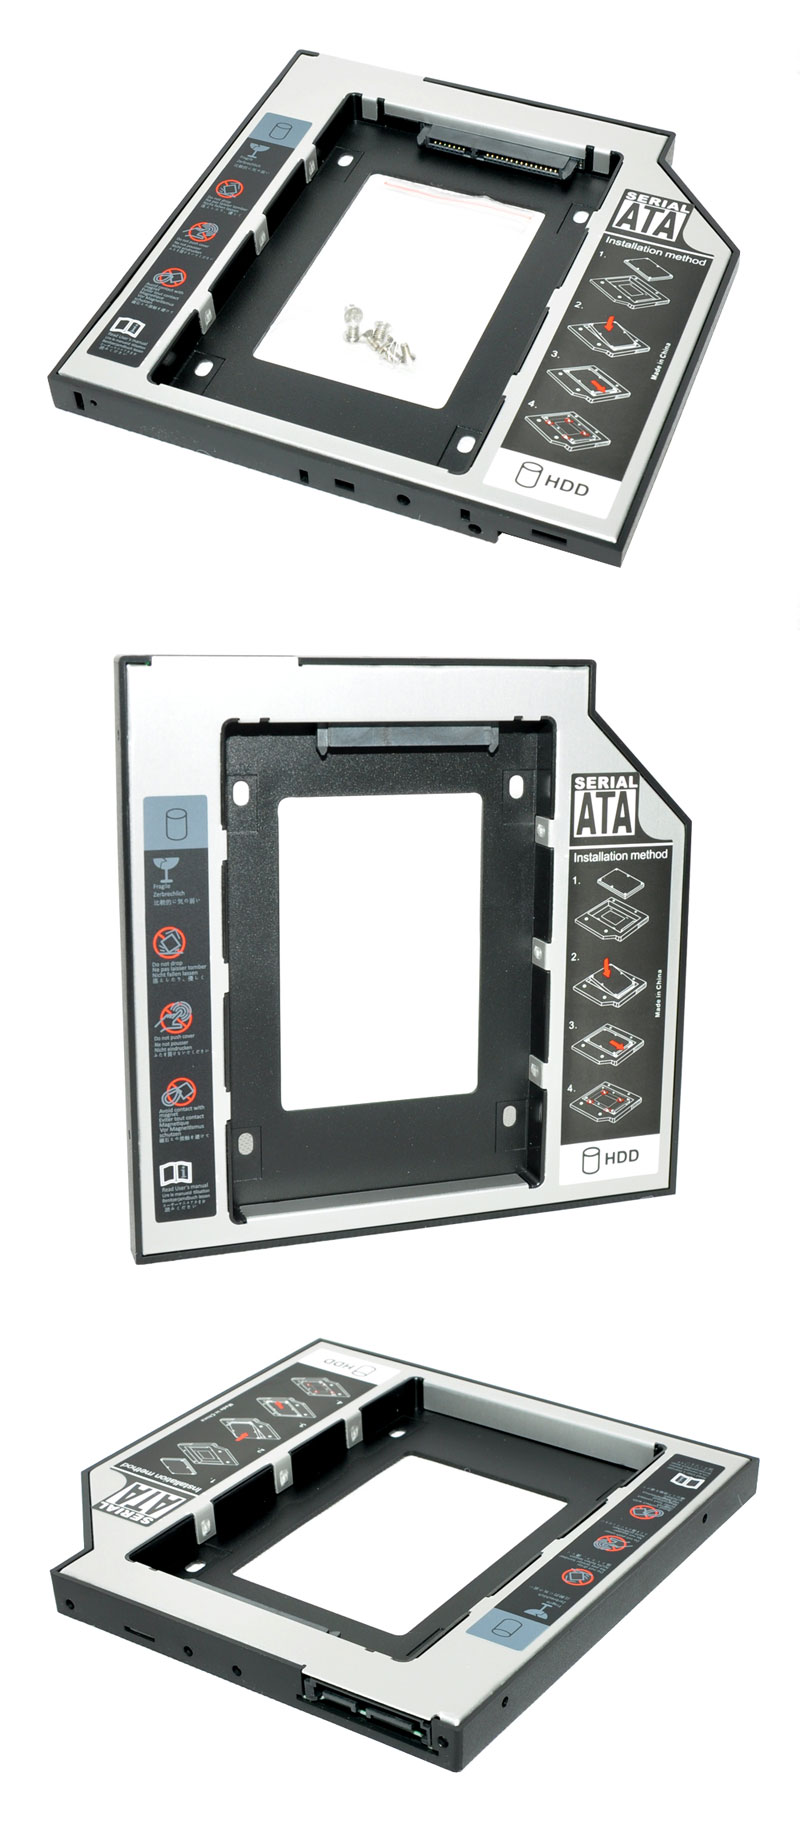 9.5mm SATA-SATA3 Universal  2nd HDD Caddy